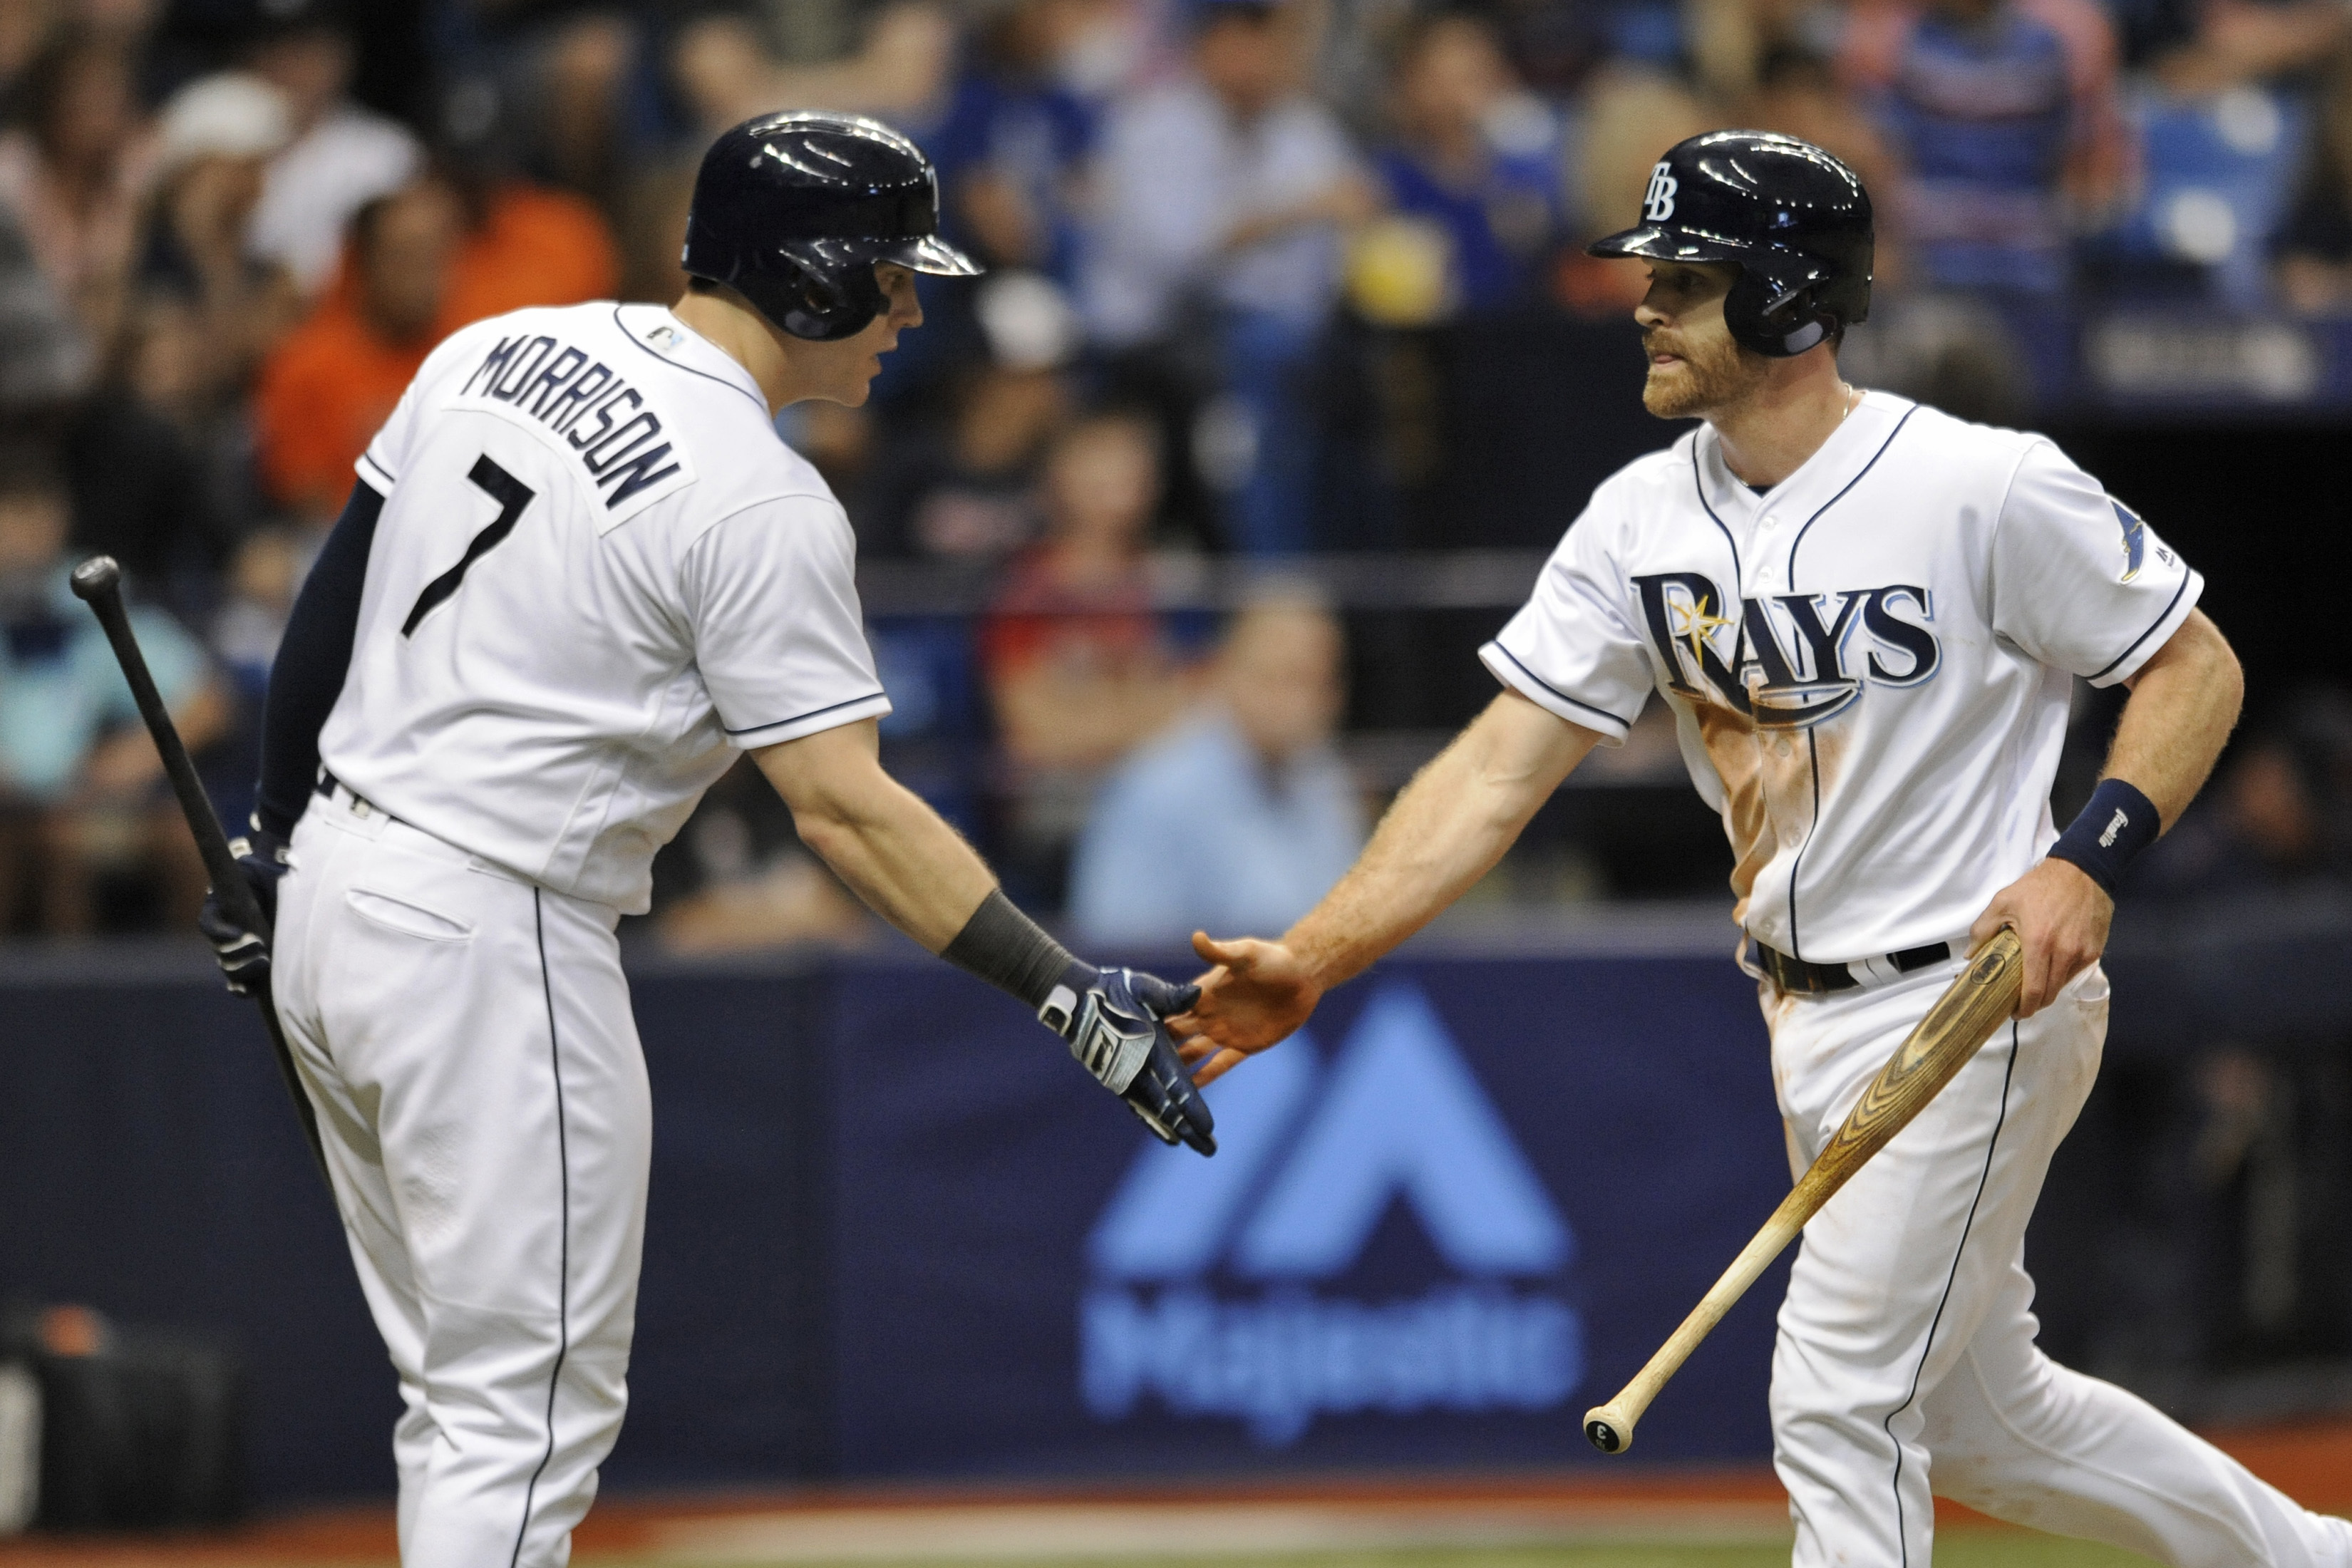 Tampa Bay Rays on-deck hitter Logan Morrison, left, greets Logan Forsythe, right, after Forsythe scored on Evan Longoria's sacrifice fly to left field during the fourth inning of a baseball game against the Detroit Tigers, Saturday, July 2, 2016, in St. P